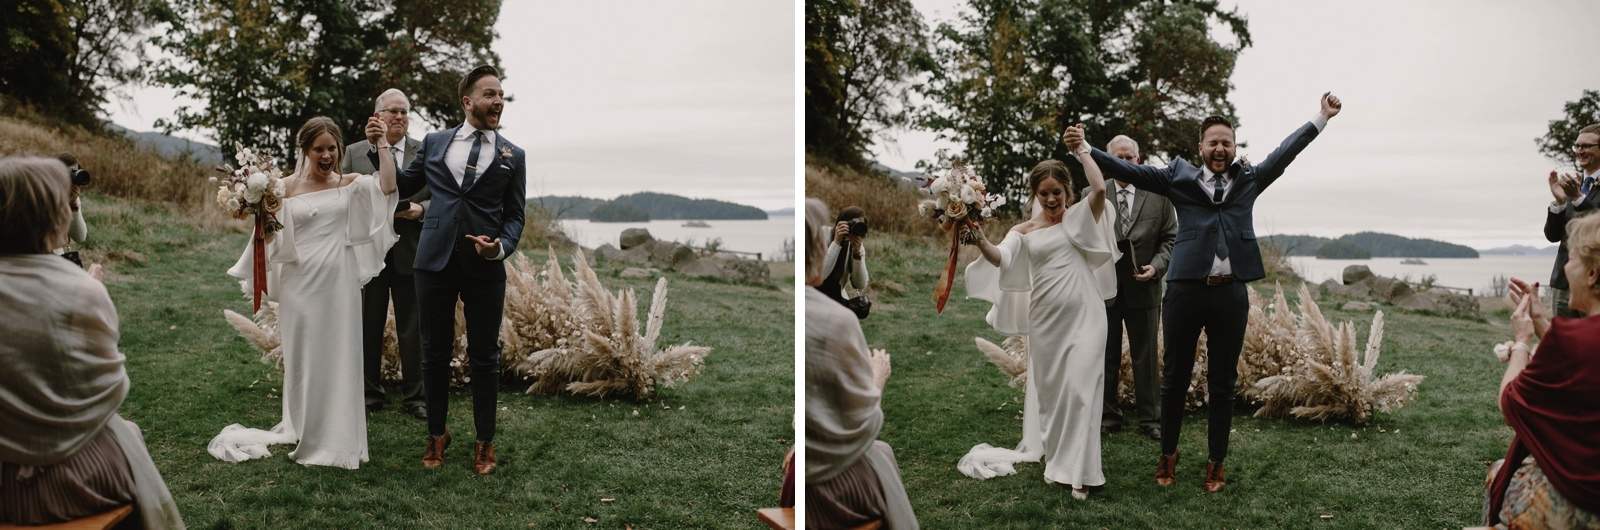 Kristen_Marie_Parker_Woodstock_Farm_Wedding061.JPG